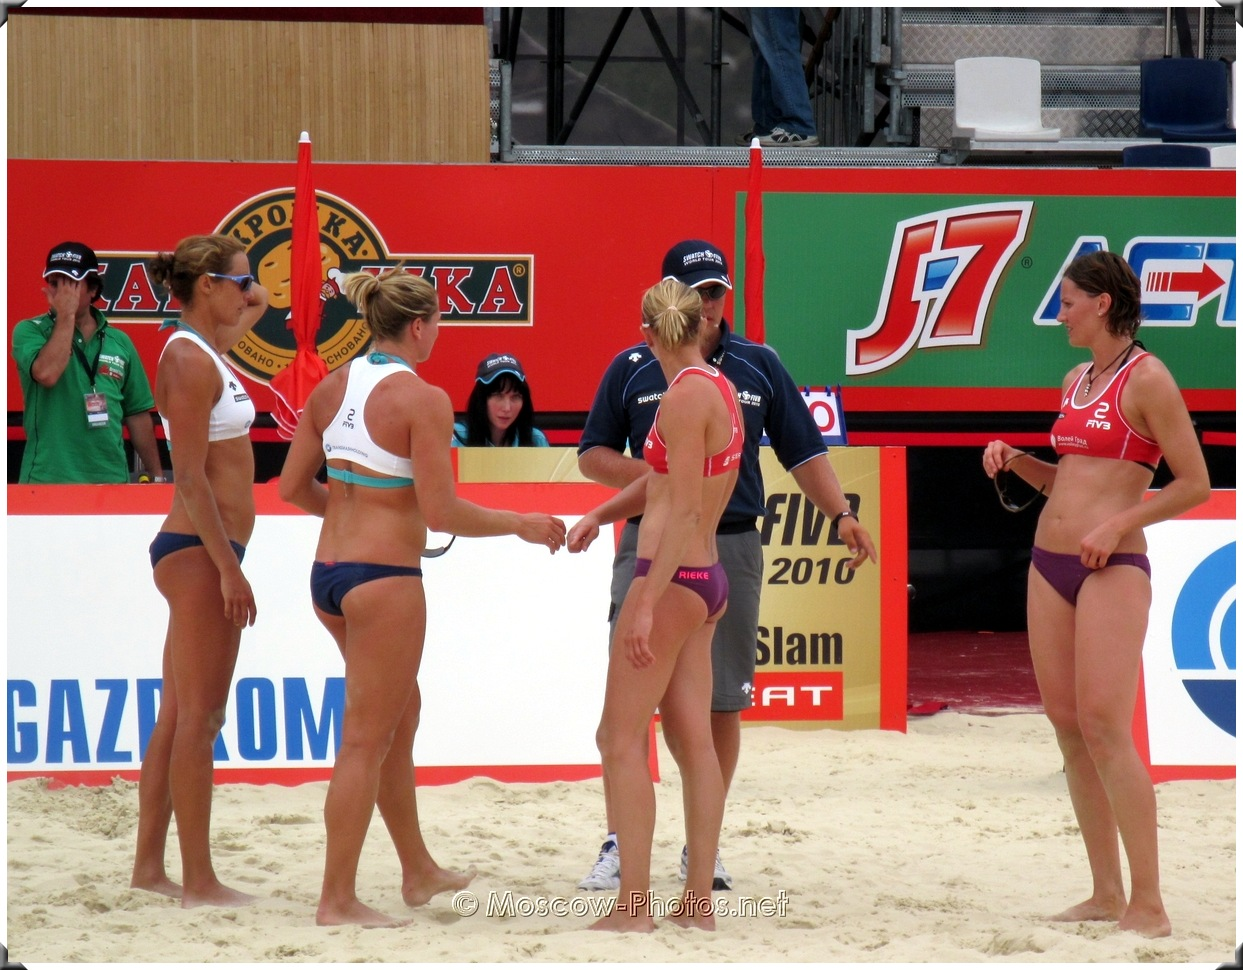 Beach volleyball negotiations with the referee